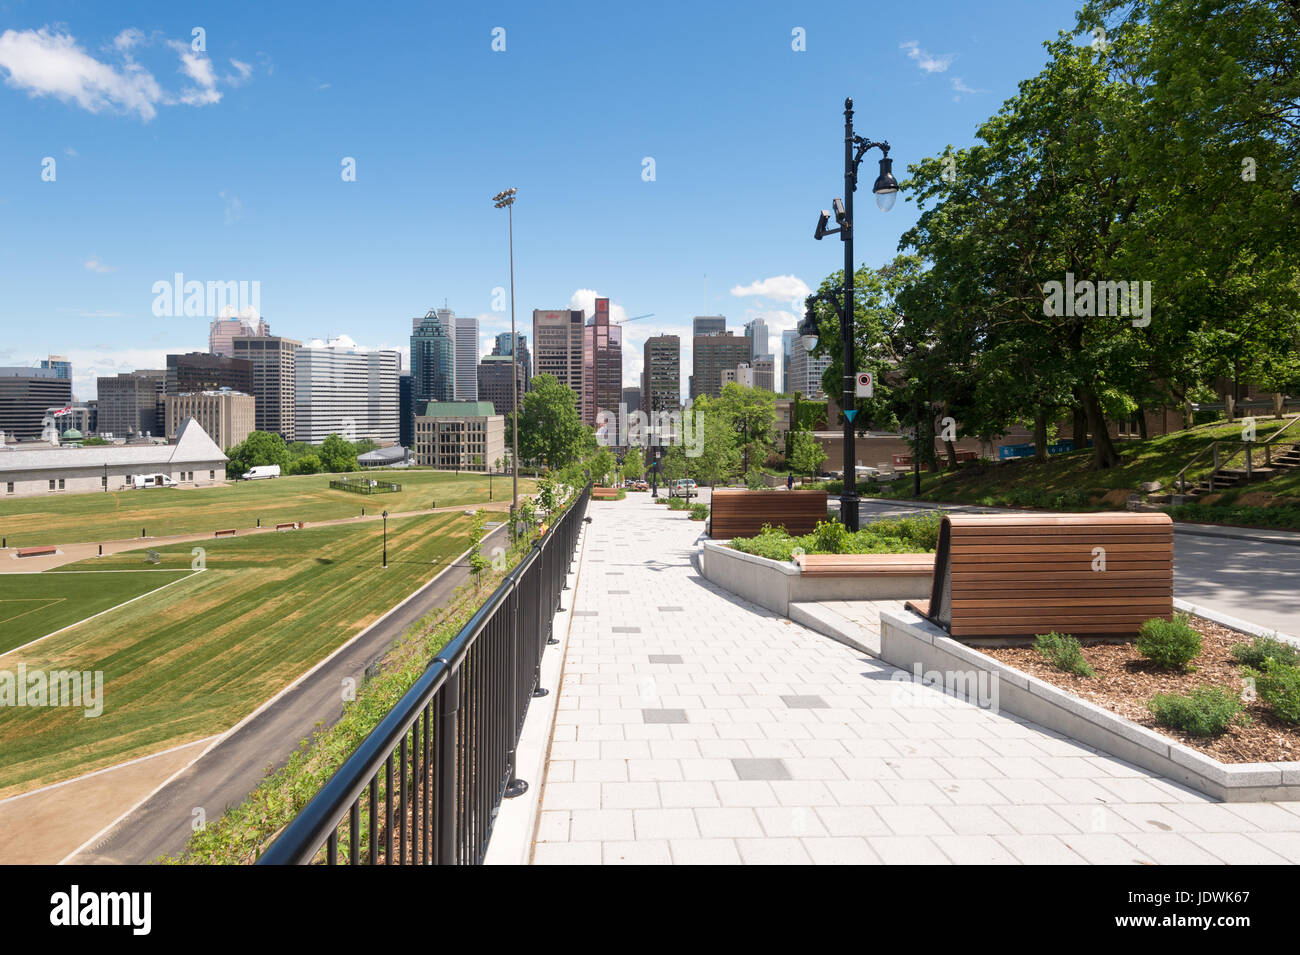 Montreal's 'Promenade Fleuve-Montagne' is a pedestrian walkway from Mount Royal to St Lawrence River - Stock Image